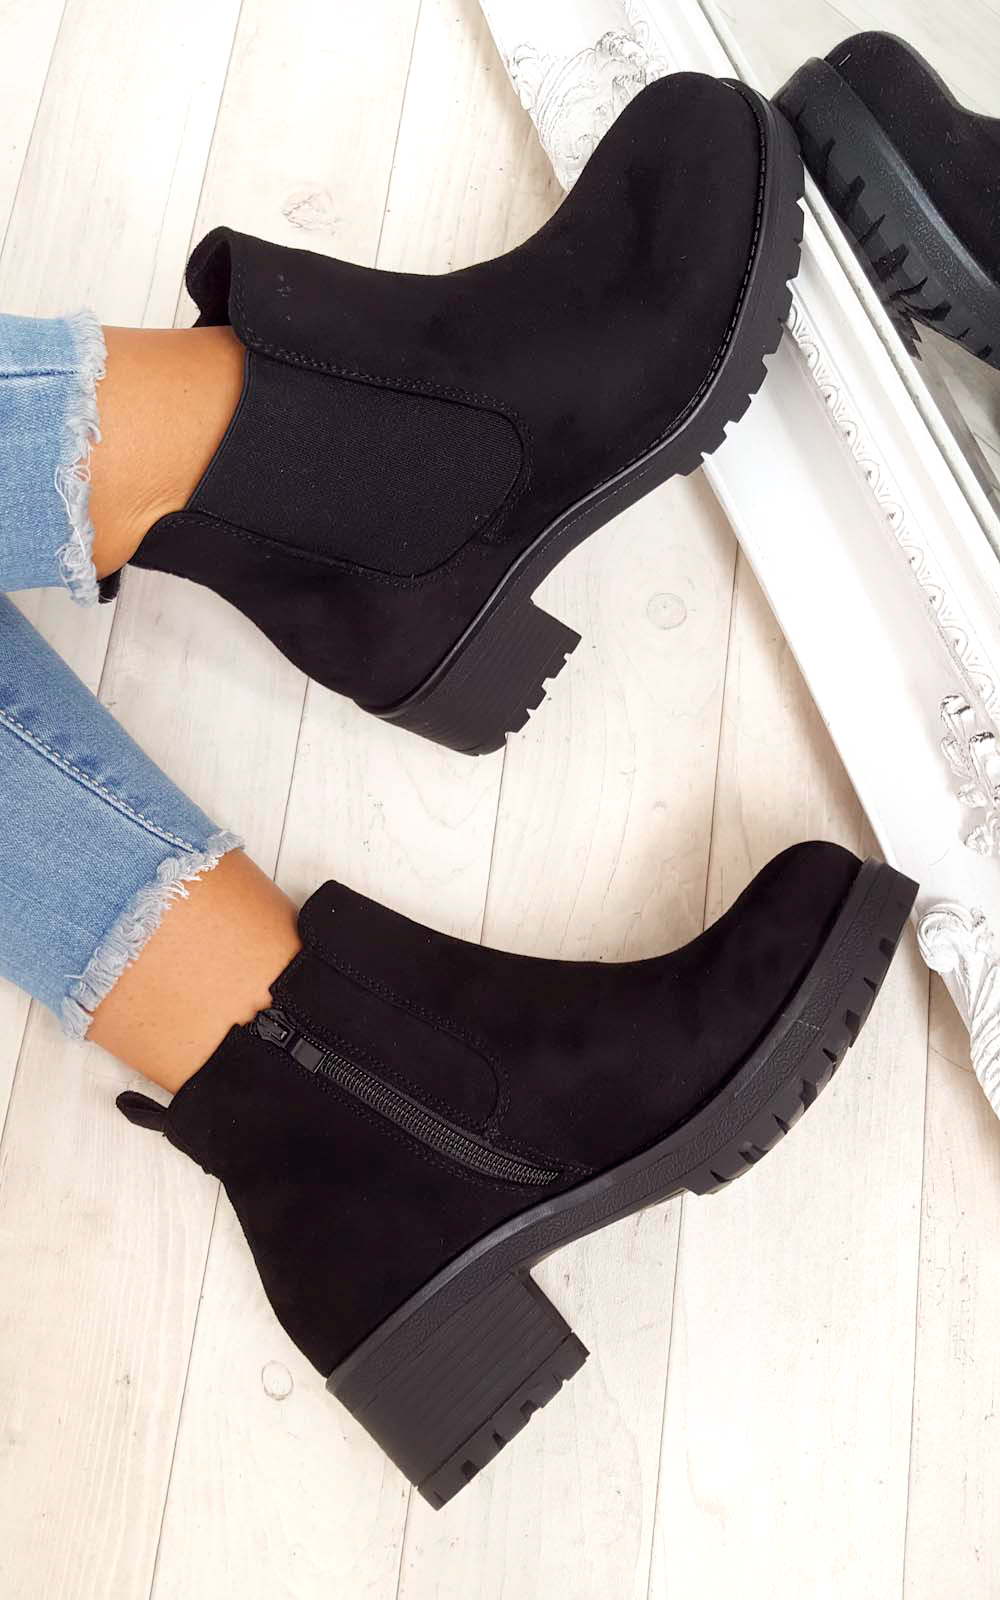 Amra Chunky Ankle Boots in Black s